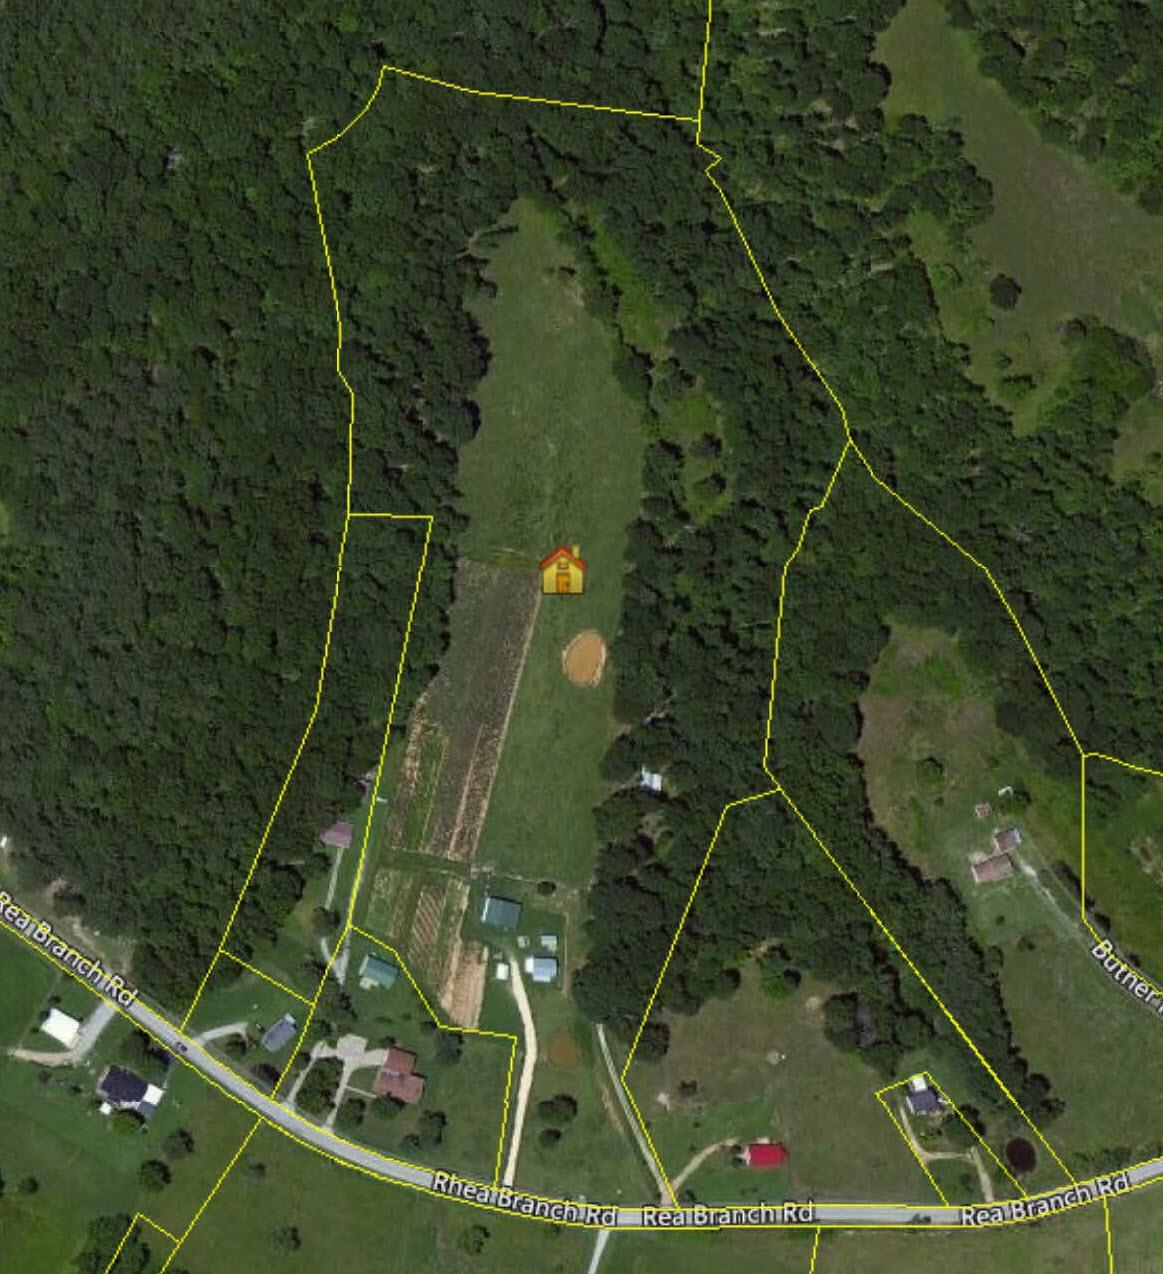 Image of  for Sale near Ethridge, Tennessee, in Giles County: 19.9 acres